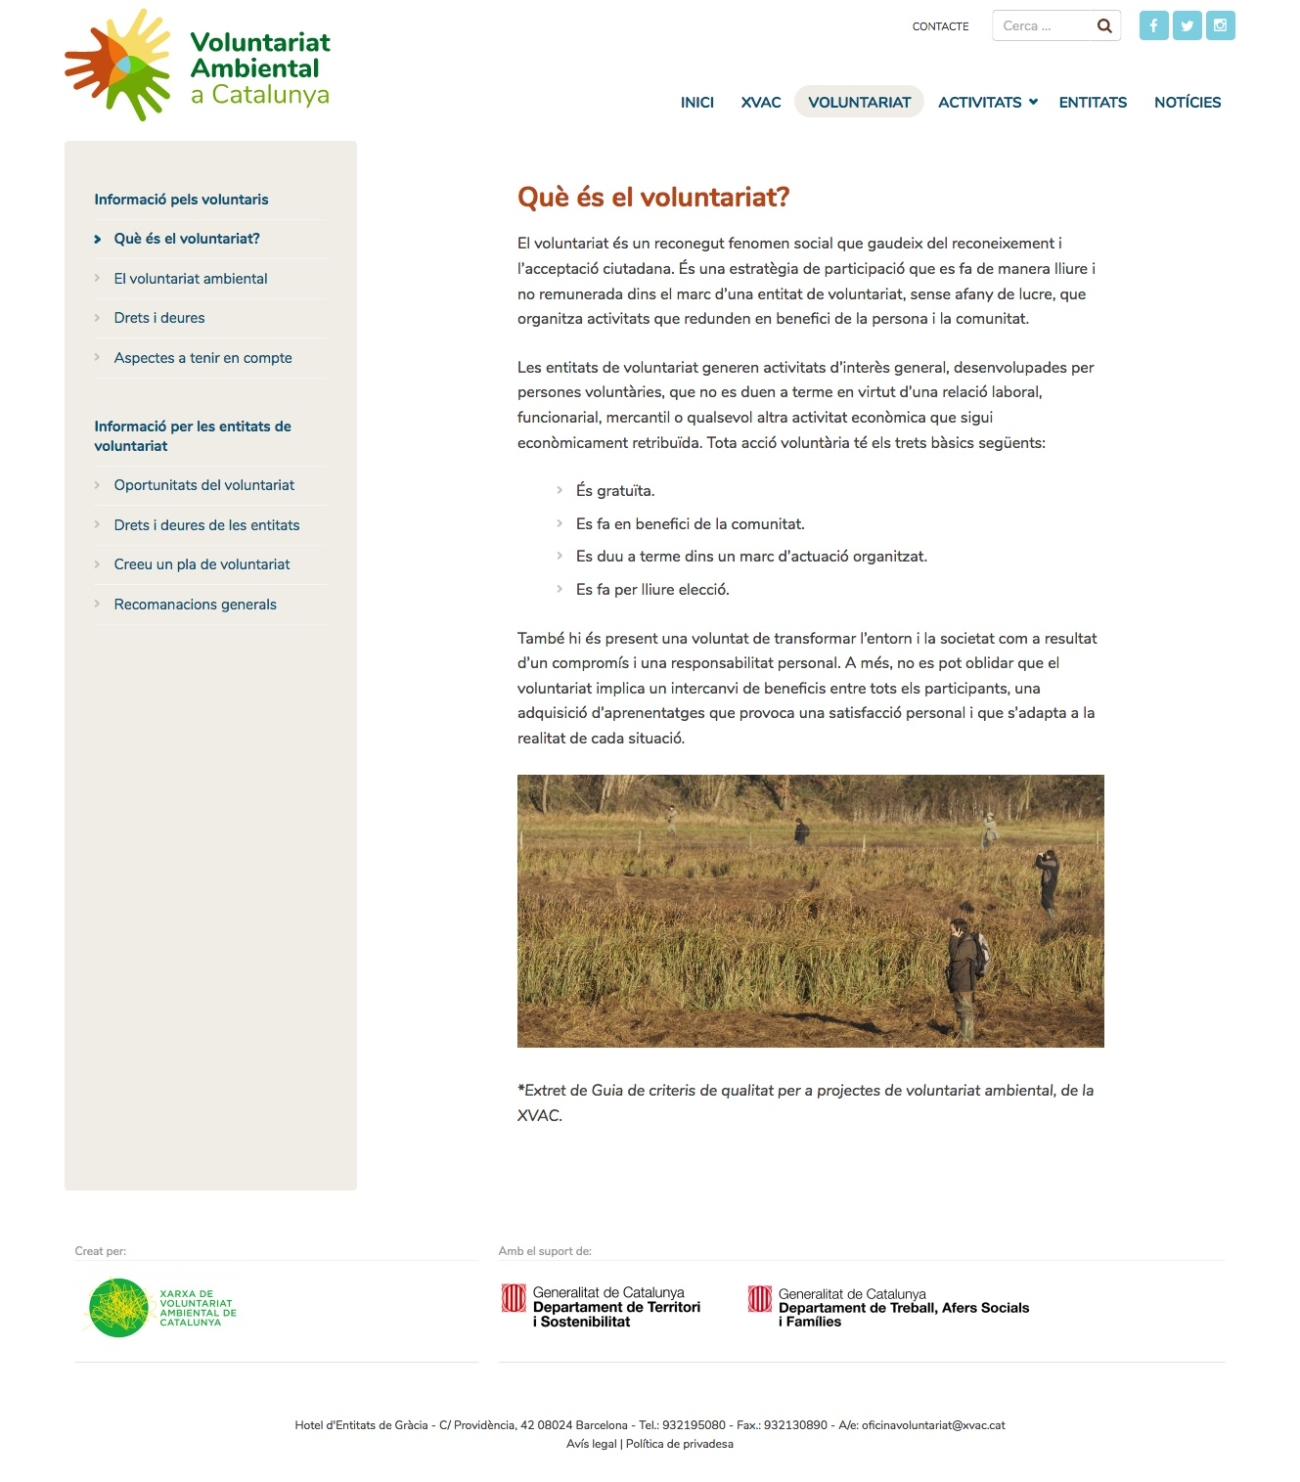 Web Voluntariat Ambiental de Catalunya